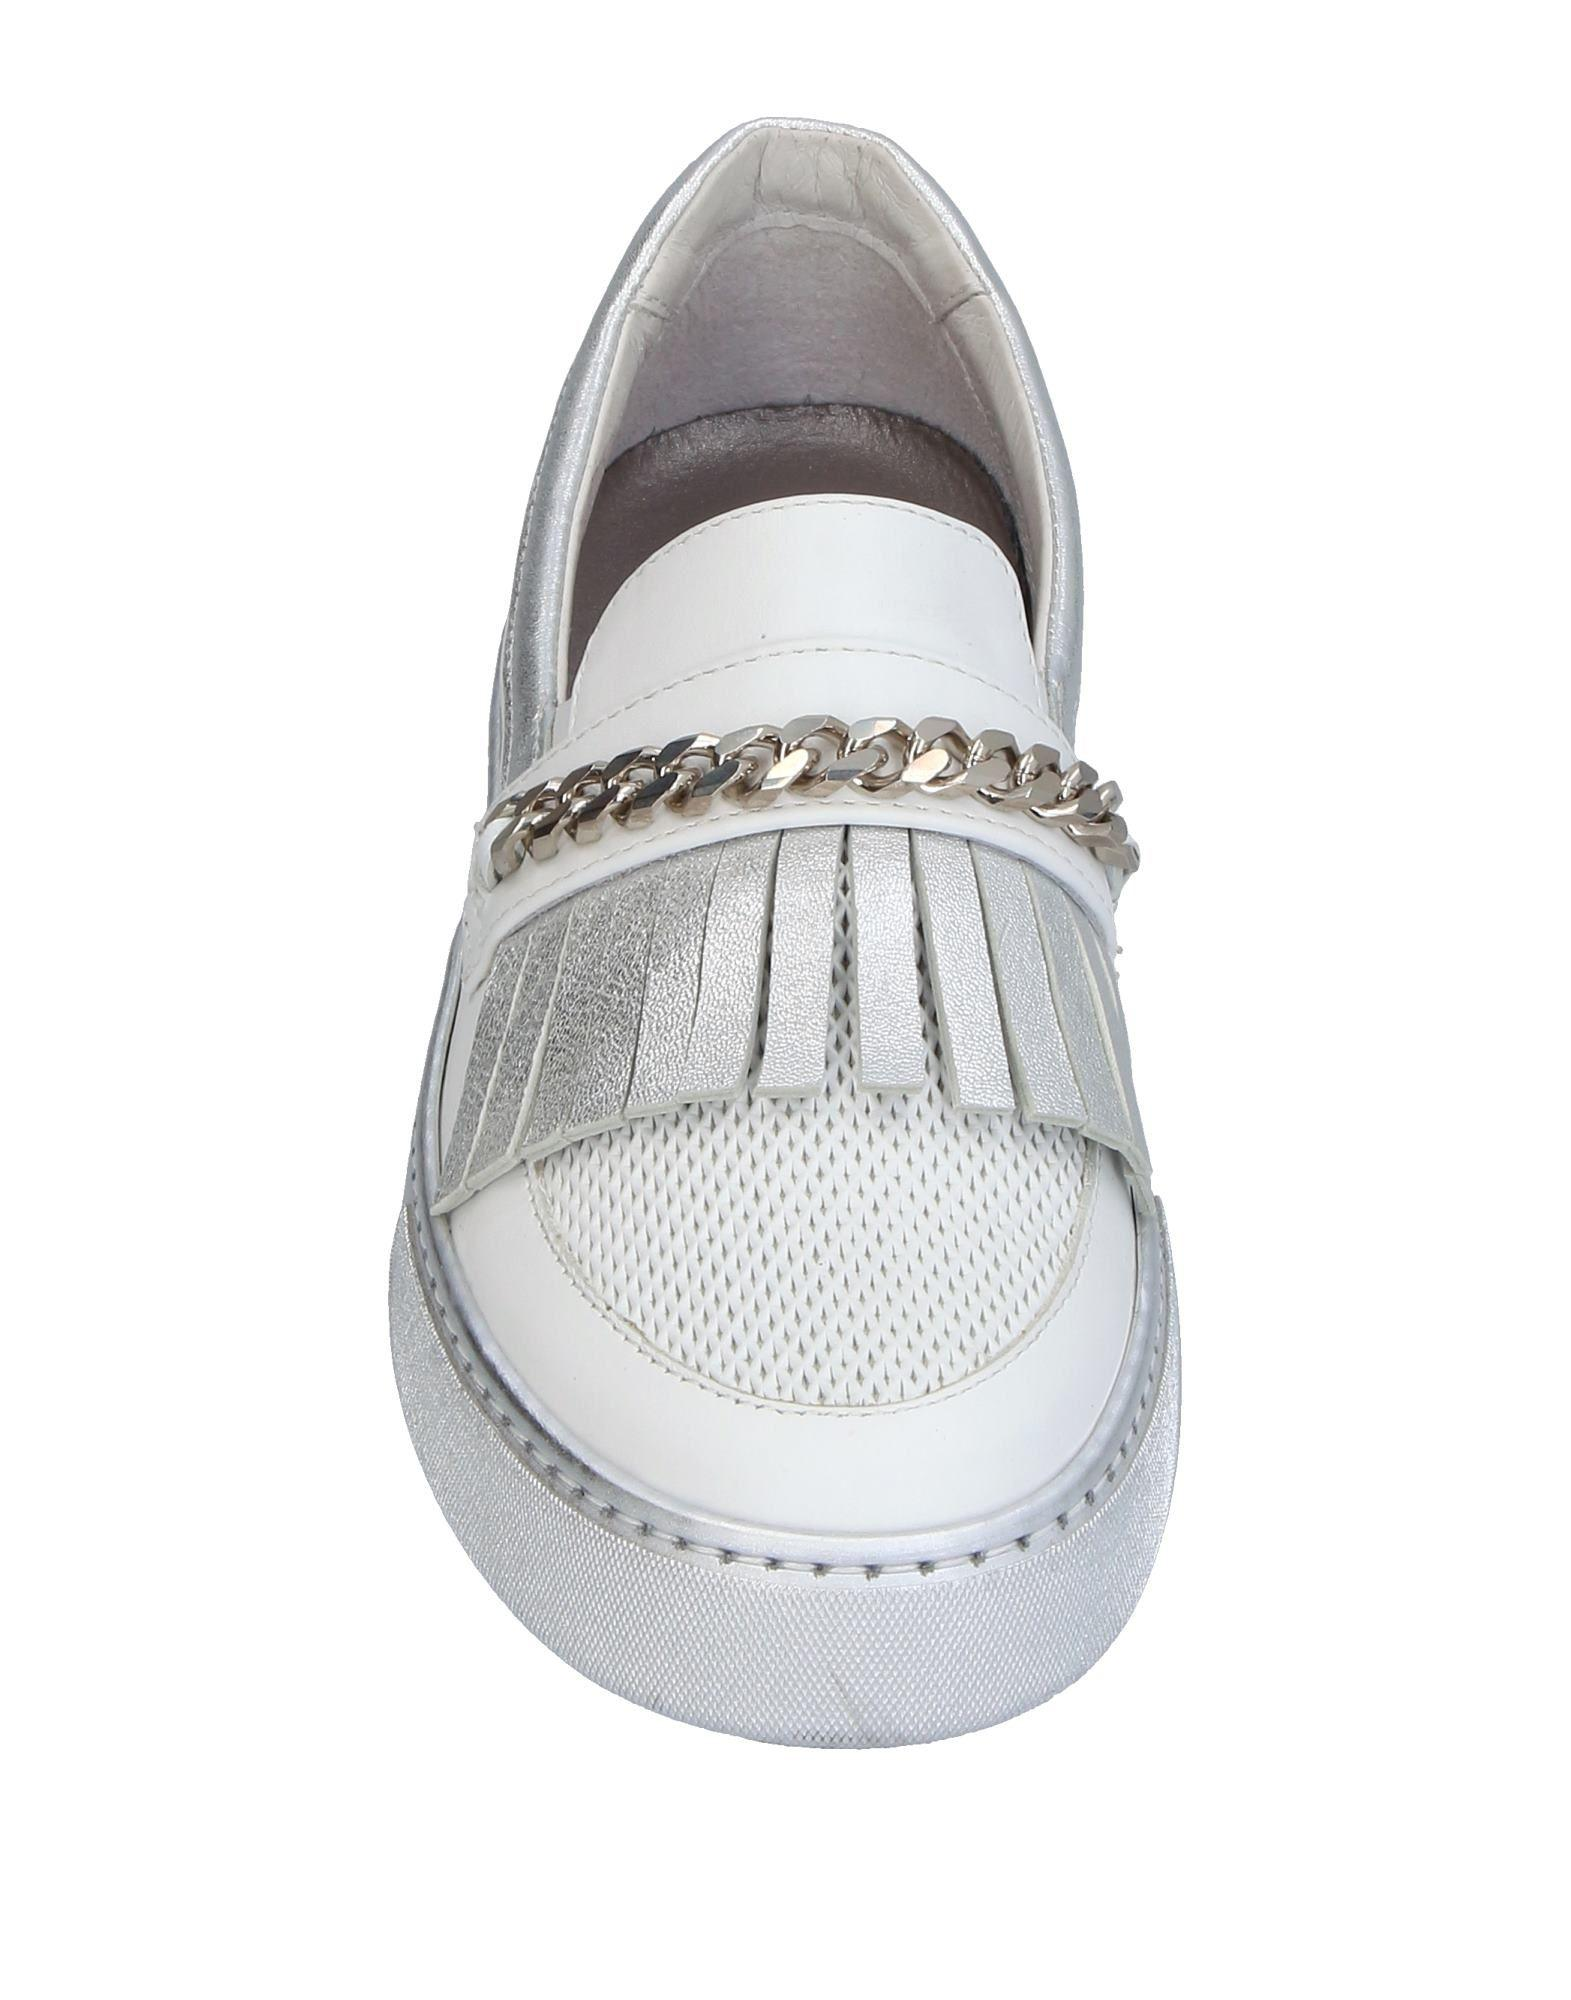 Botticelli Limited Leather Low-tops & Sneakers in White